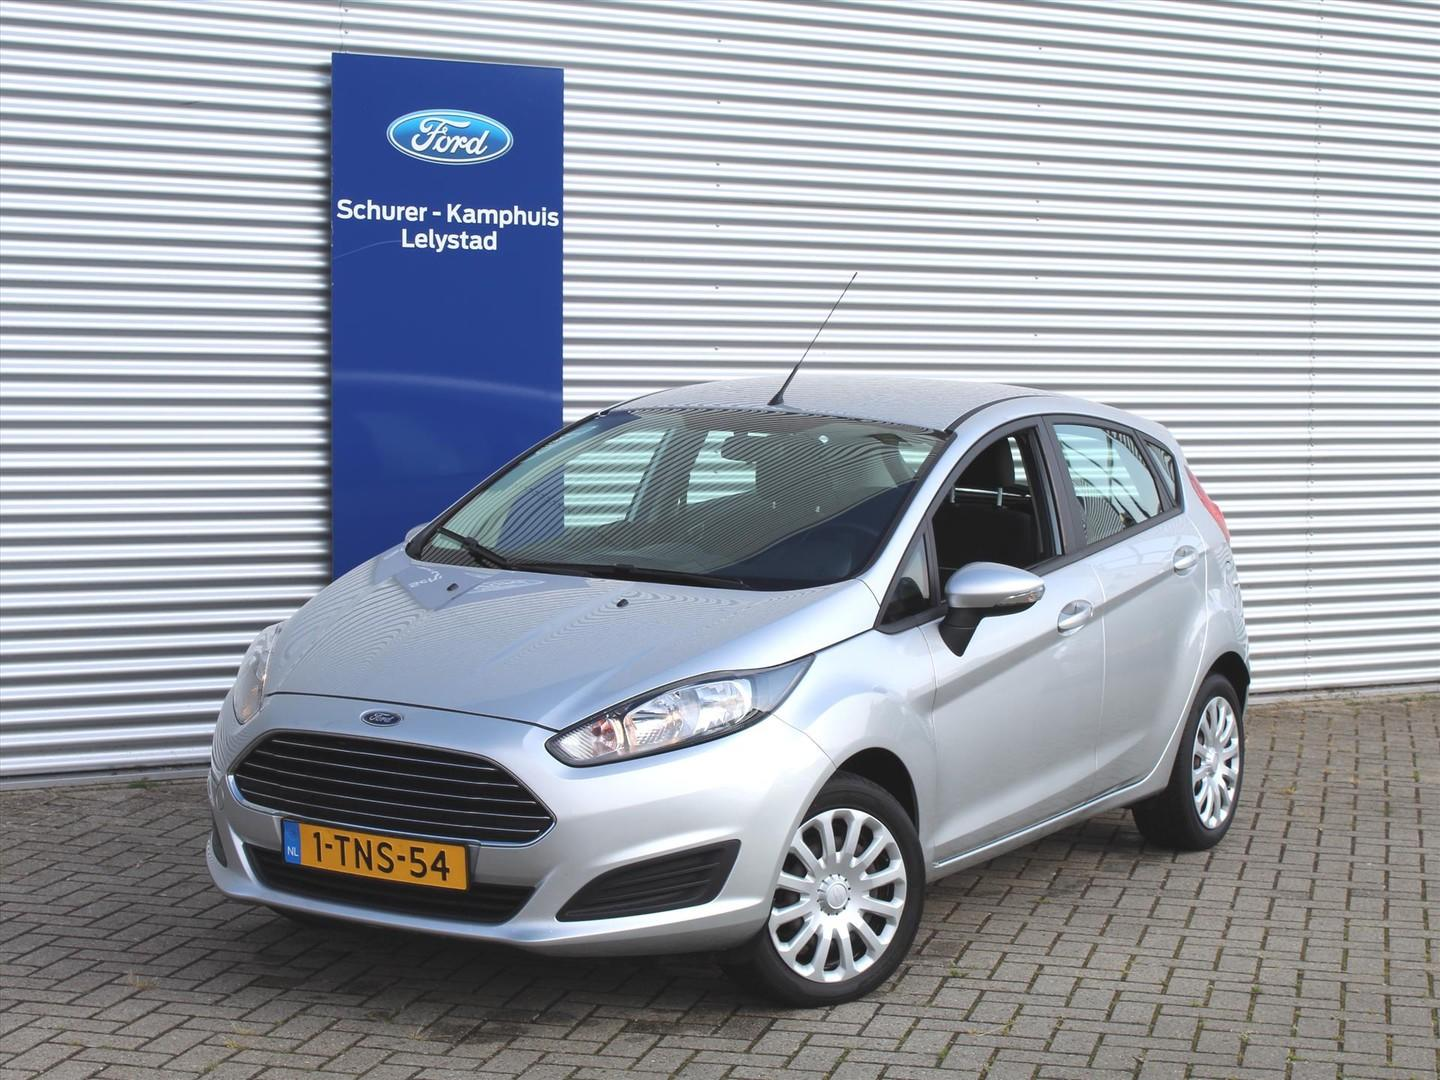 Ford Fiesta 1.0 (65pk) cruise style